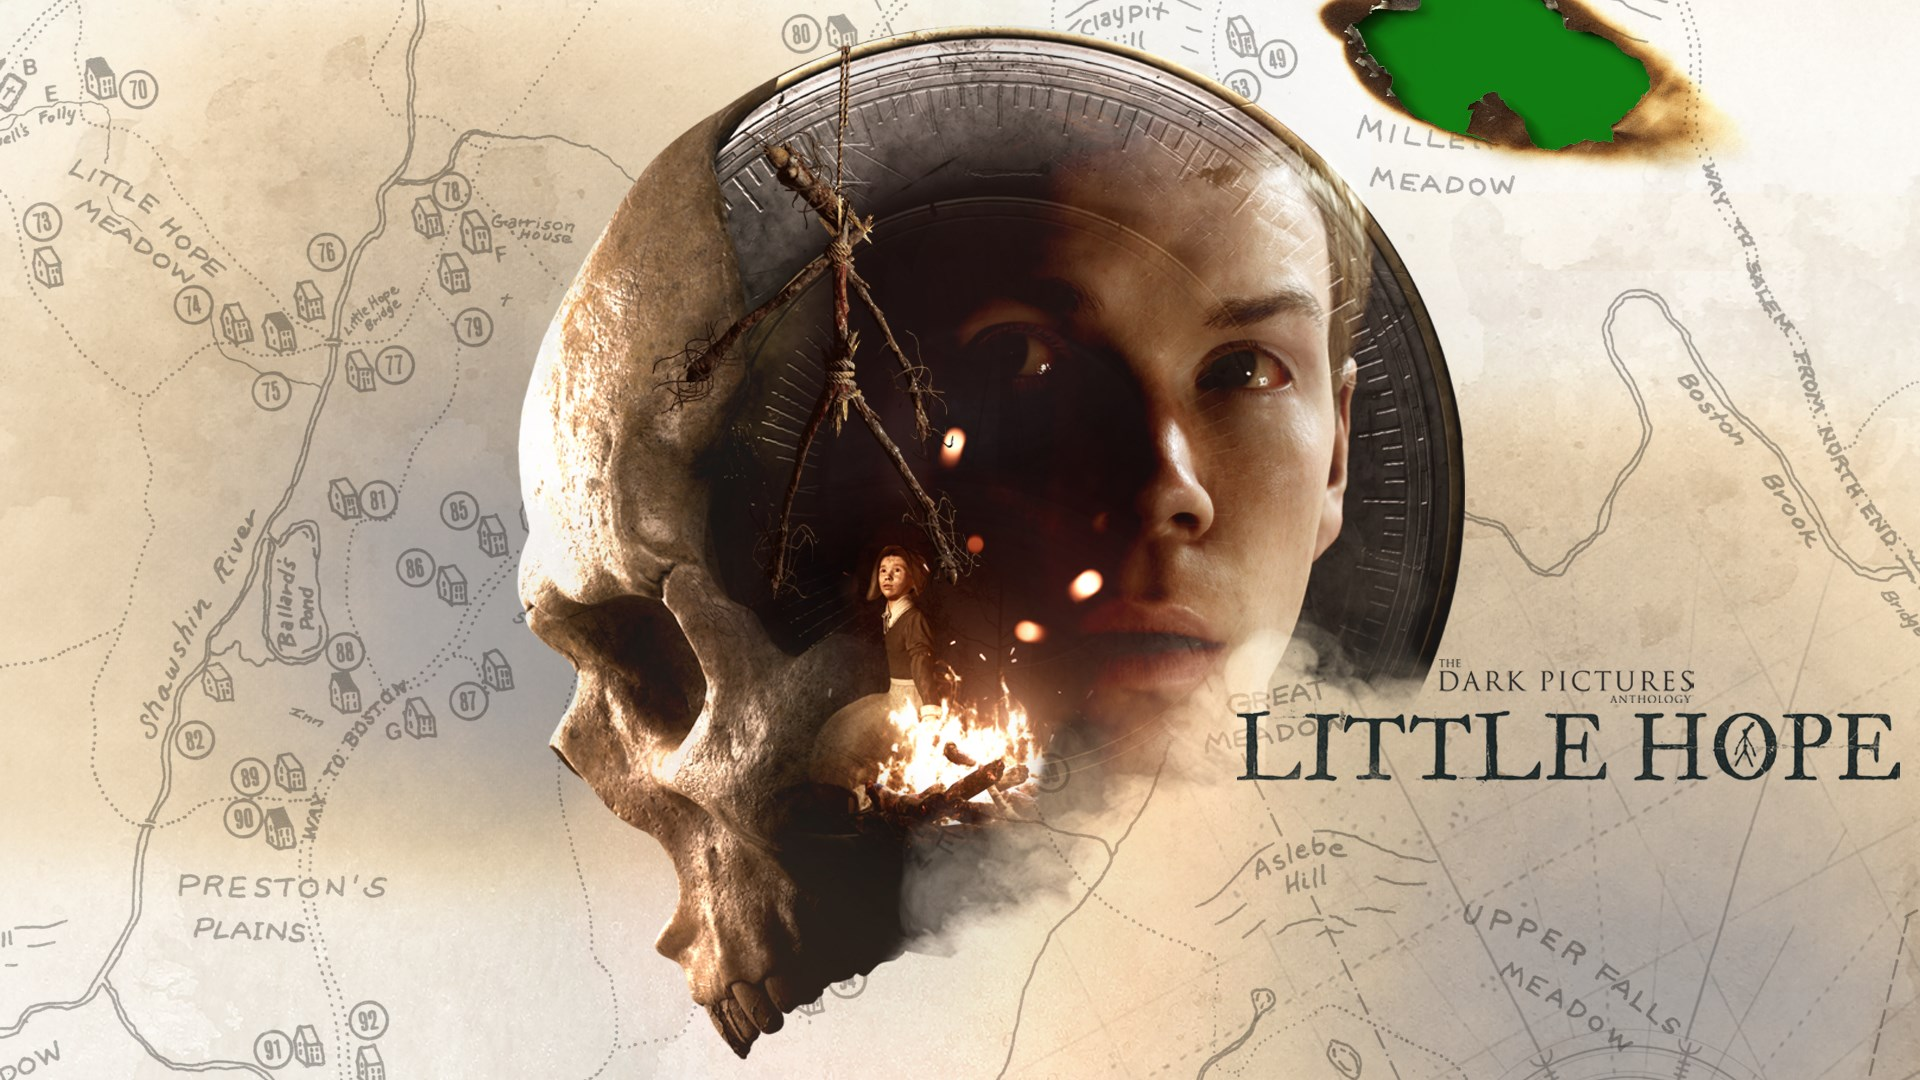 The Dark Pictures Anthology: Little Hope Is Now Available For Digital Pre-order And Pre-download On Xbox One